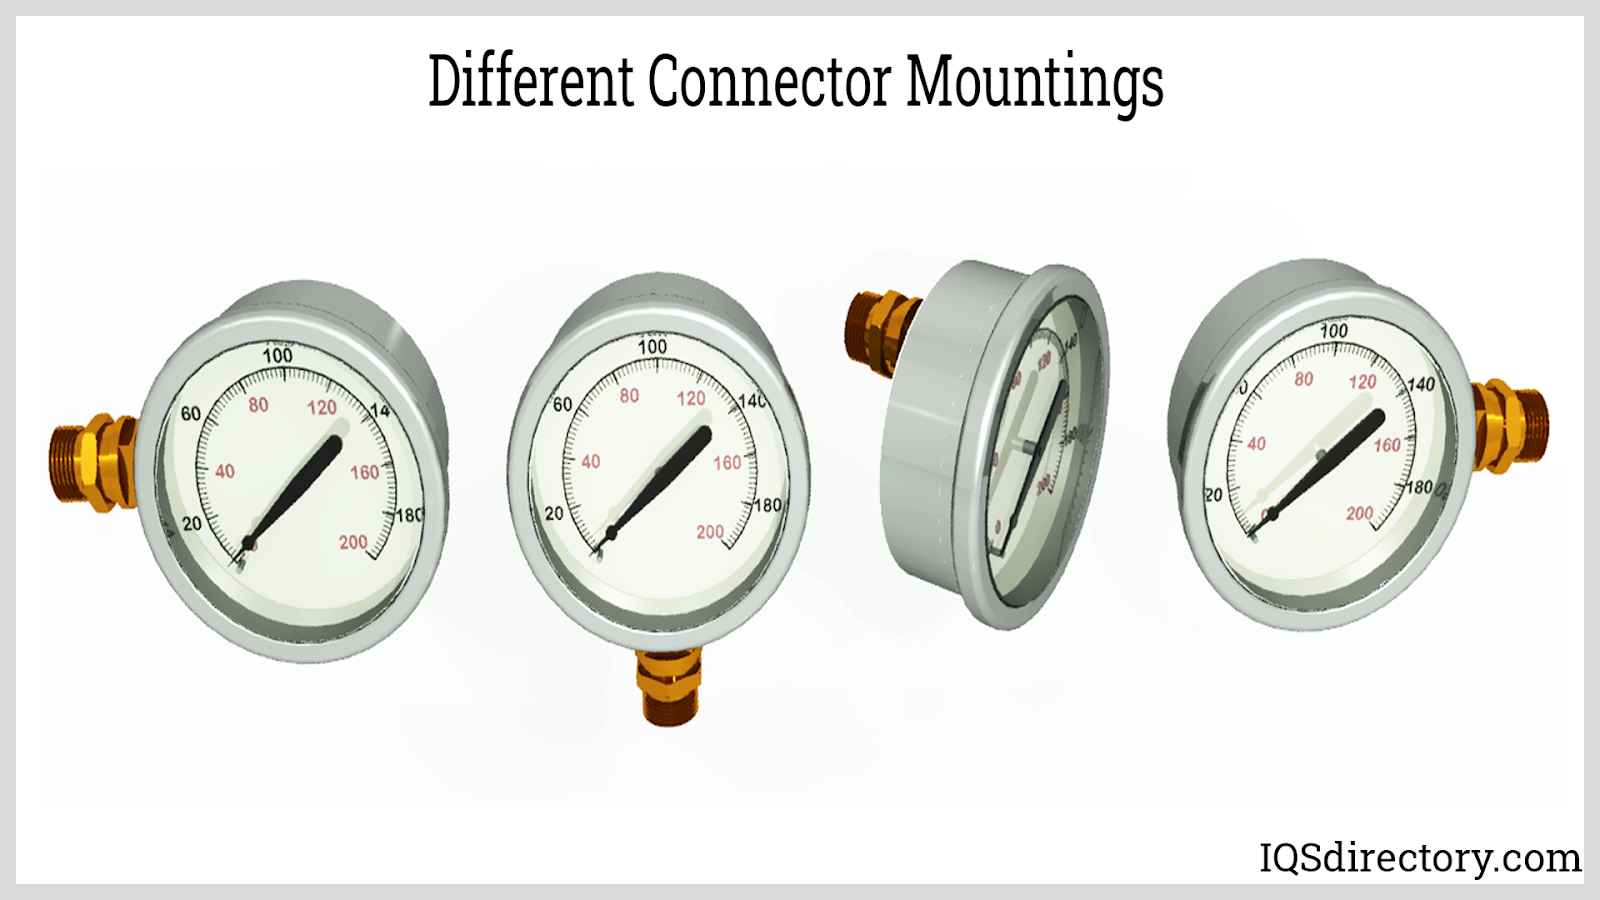 Different Connector Mountings